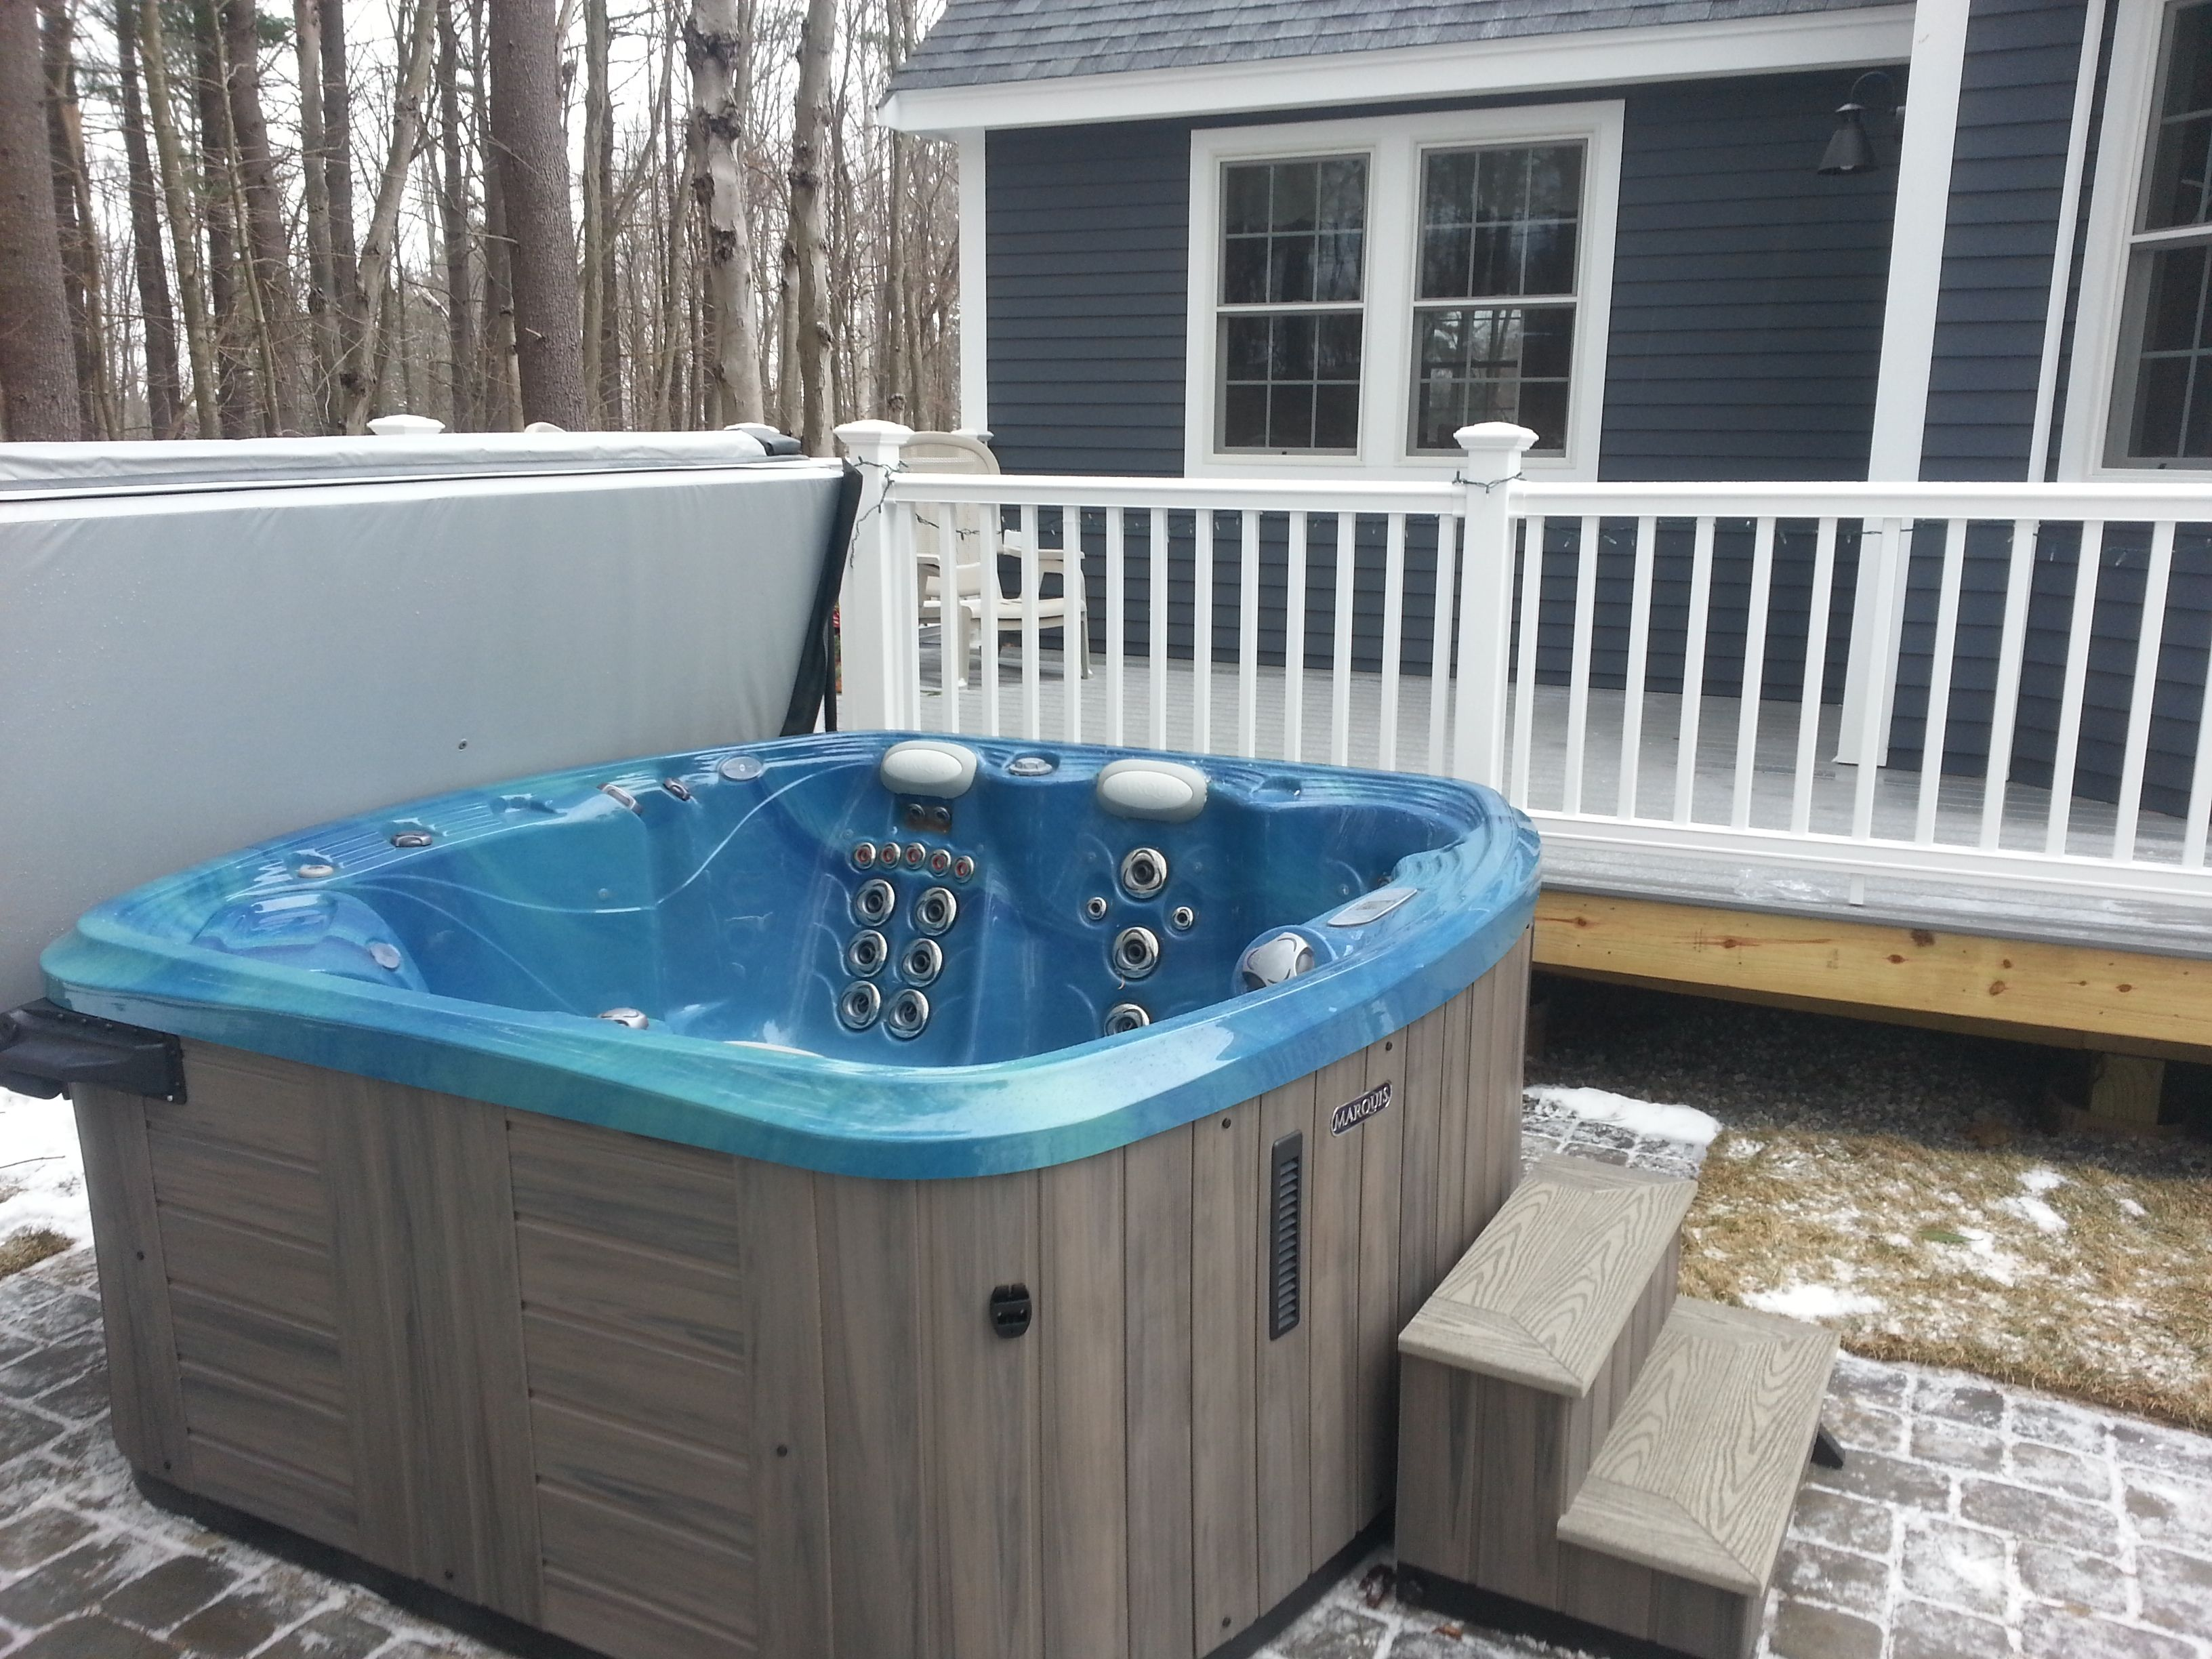 What Type Of Base Do You Need For A Hot Tub Spa Installation Hot Tub Hot Tub Backyard Spa Hot Tubs